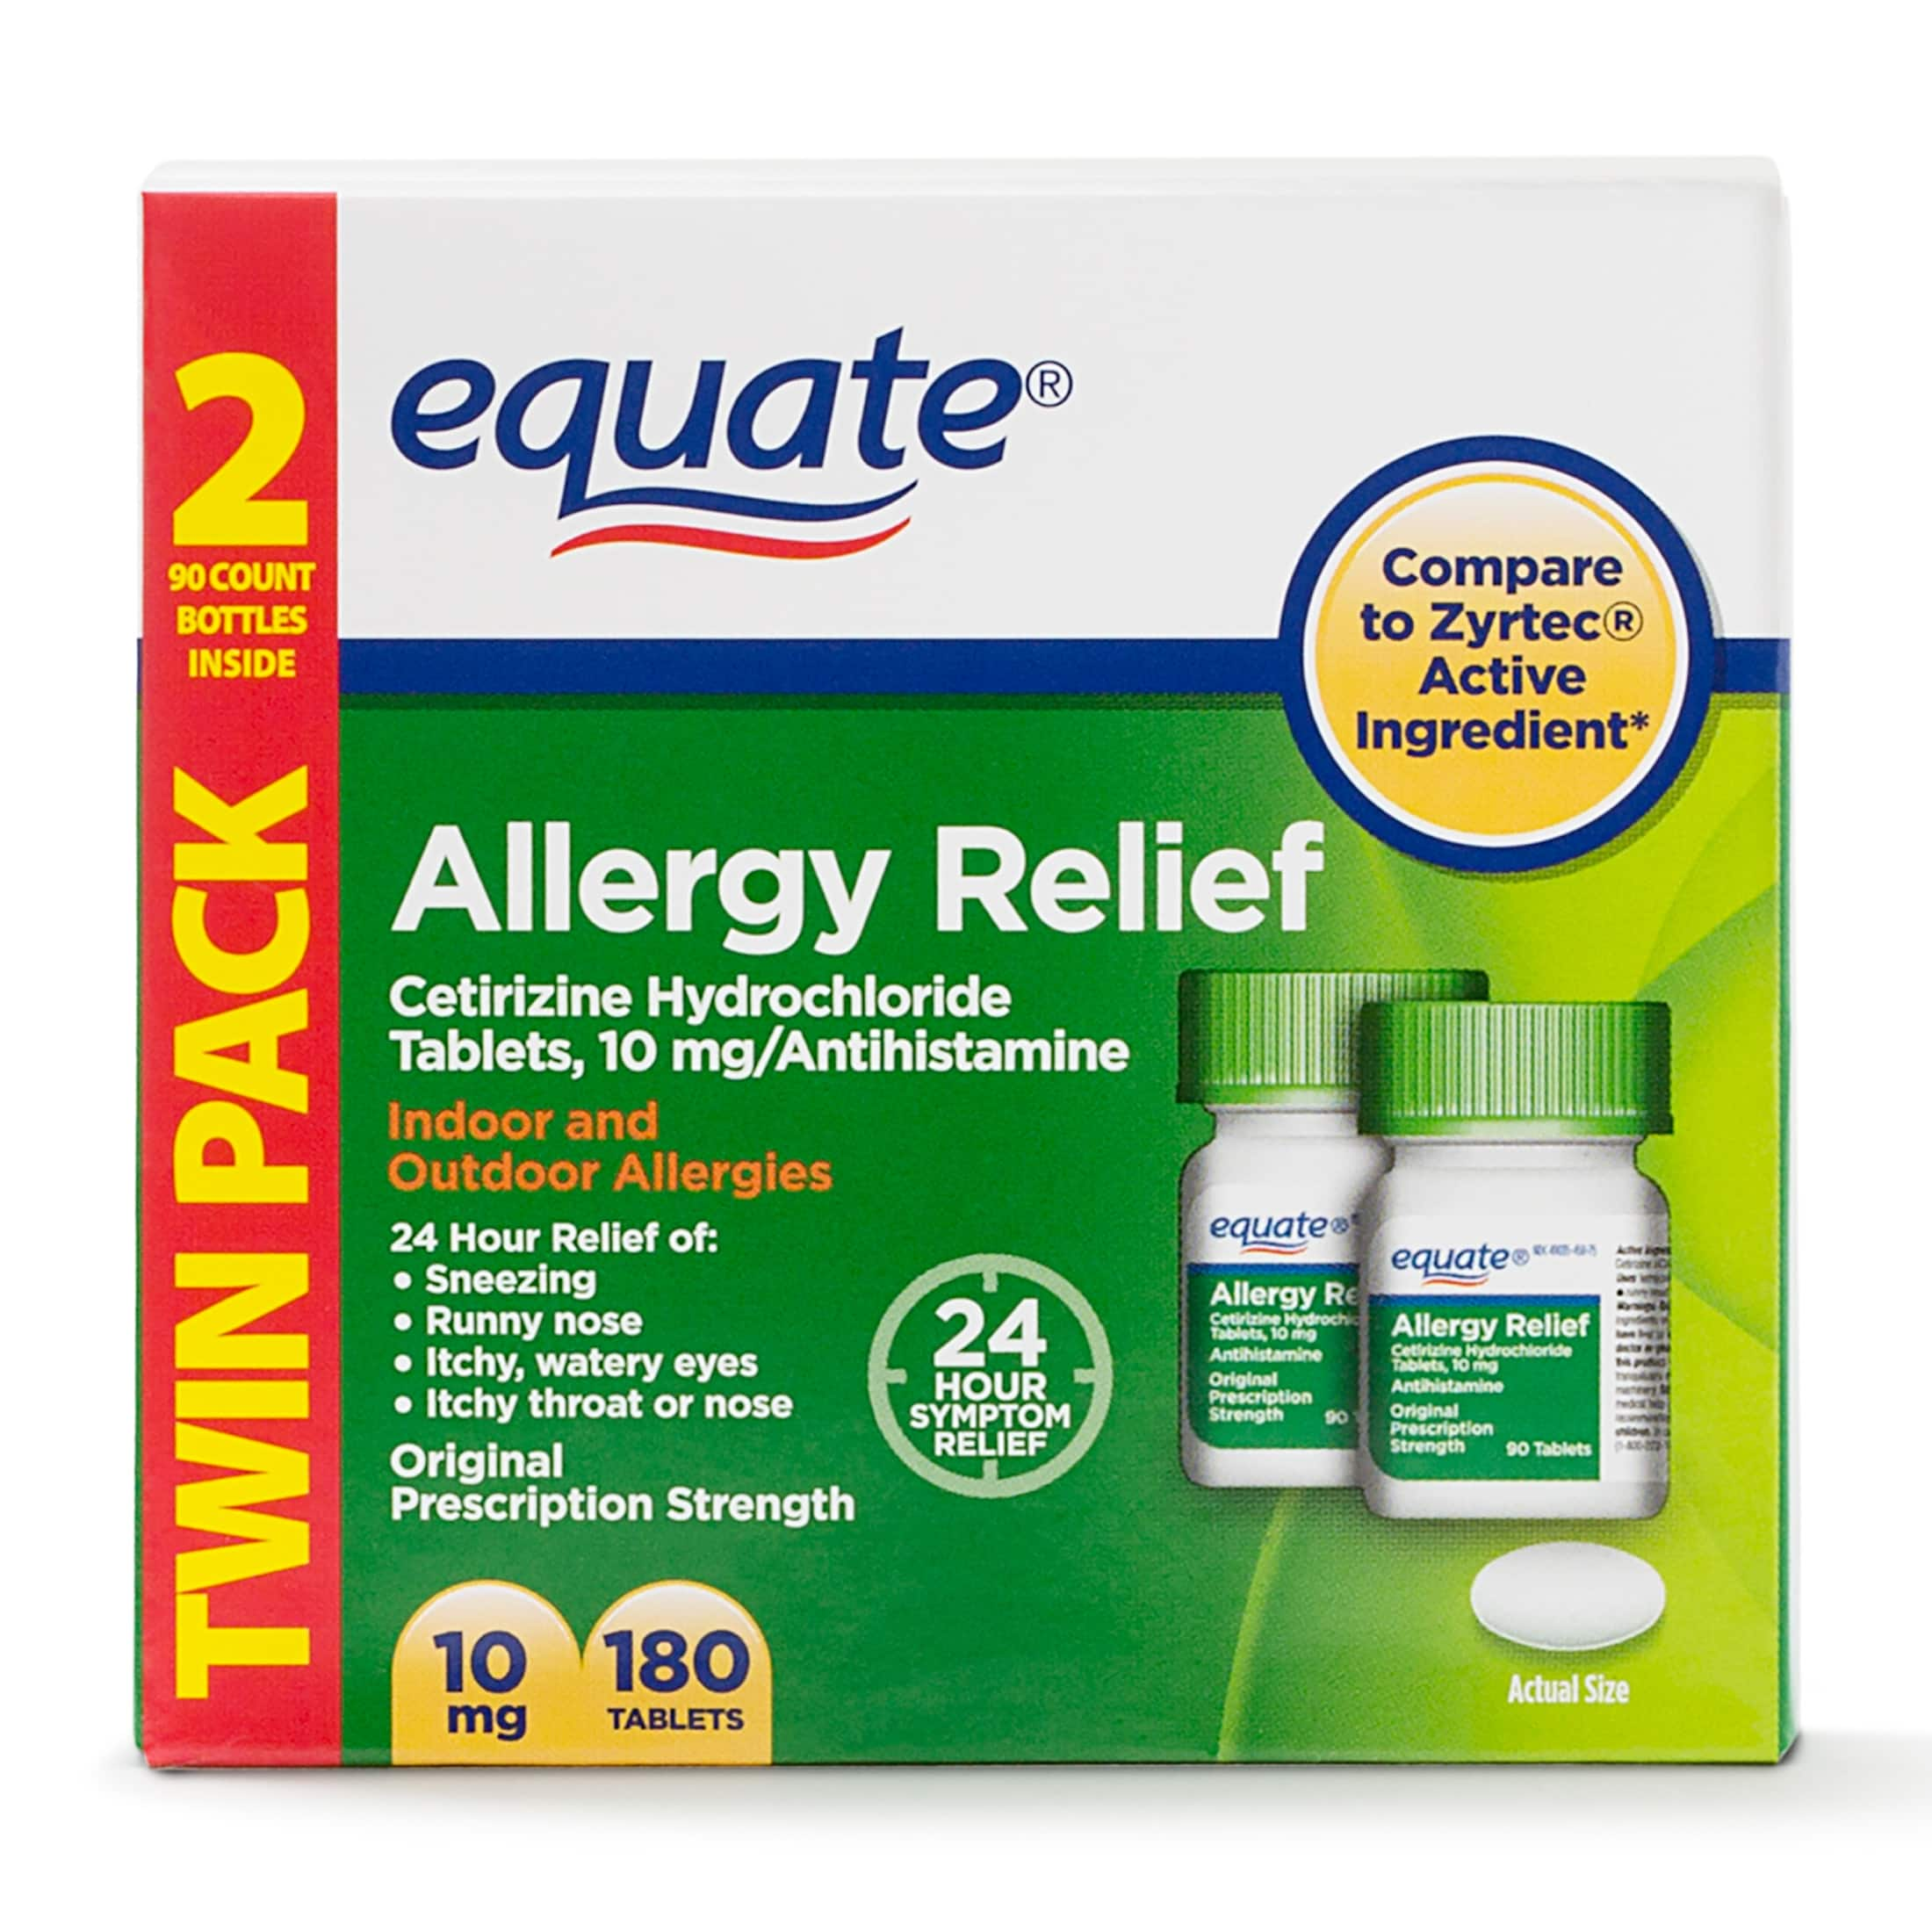 Equate Allergy Relief Cetirizine Hydrochloride (compare to Zyrtec)180 Tablets. $7.50 Walmart online only